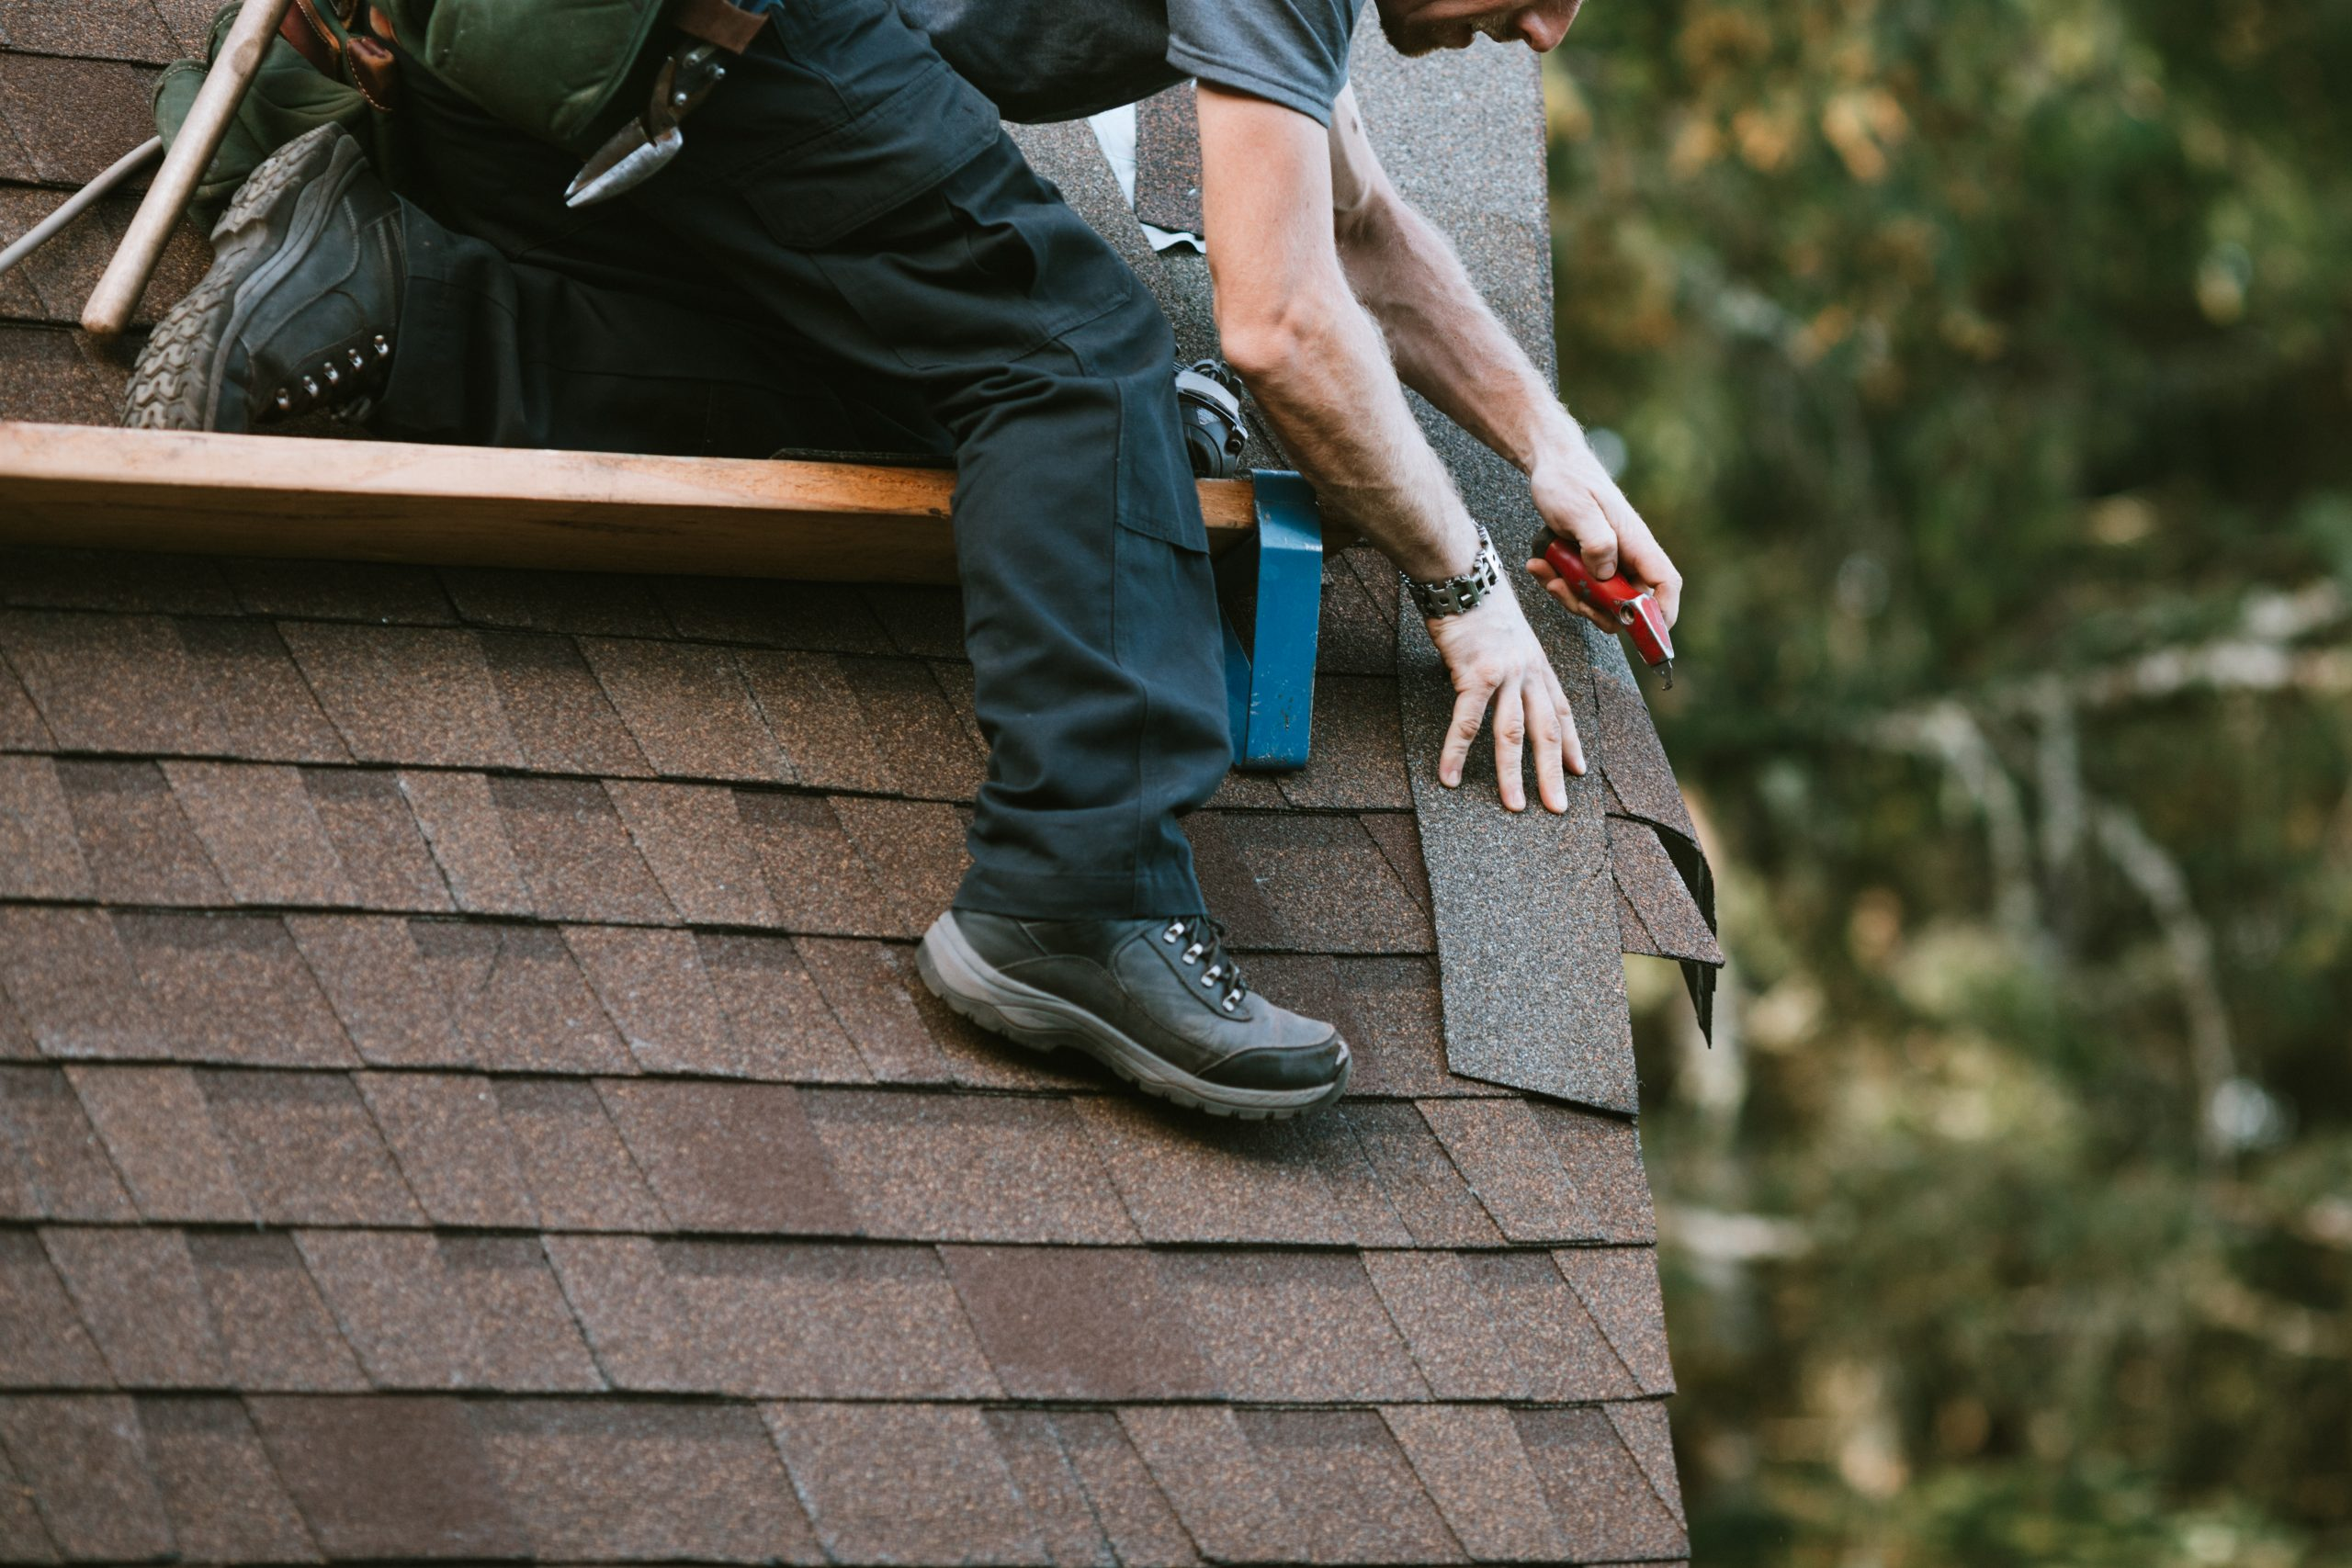 A roofer and crew work on putting in new roofing shingles.  Small local business serving local families in Washington State.